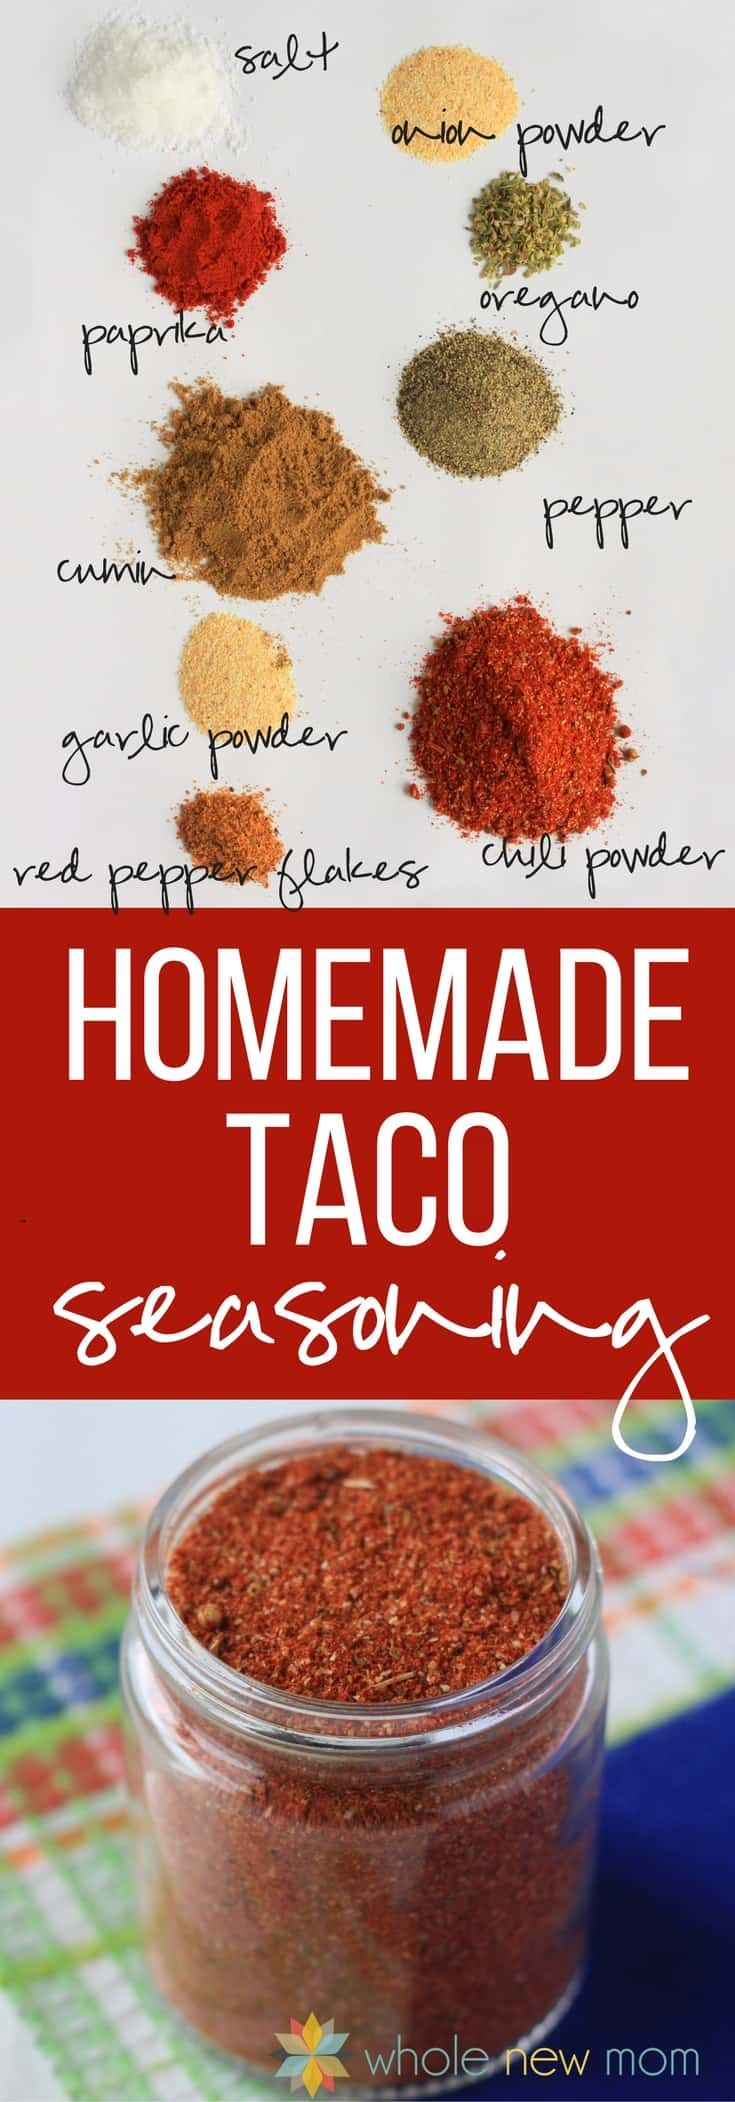 Homemade Taco Seasoning Recipe {not too spicy!} | Whole New Mom